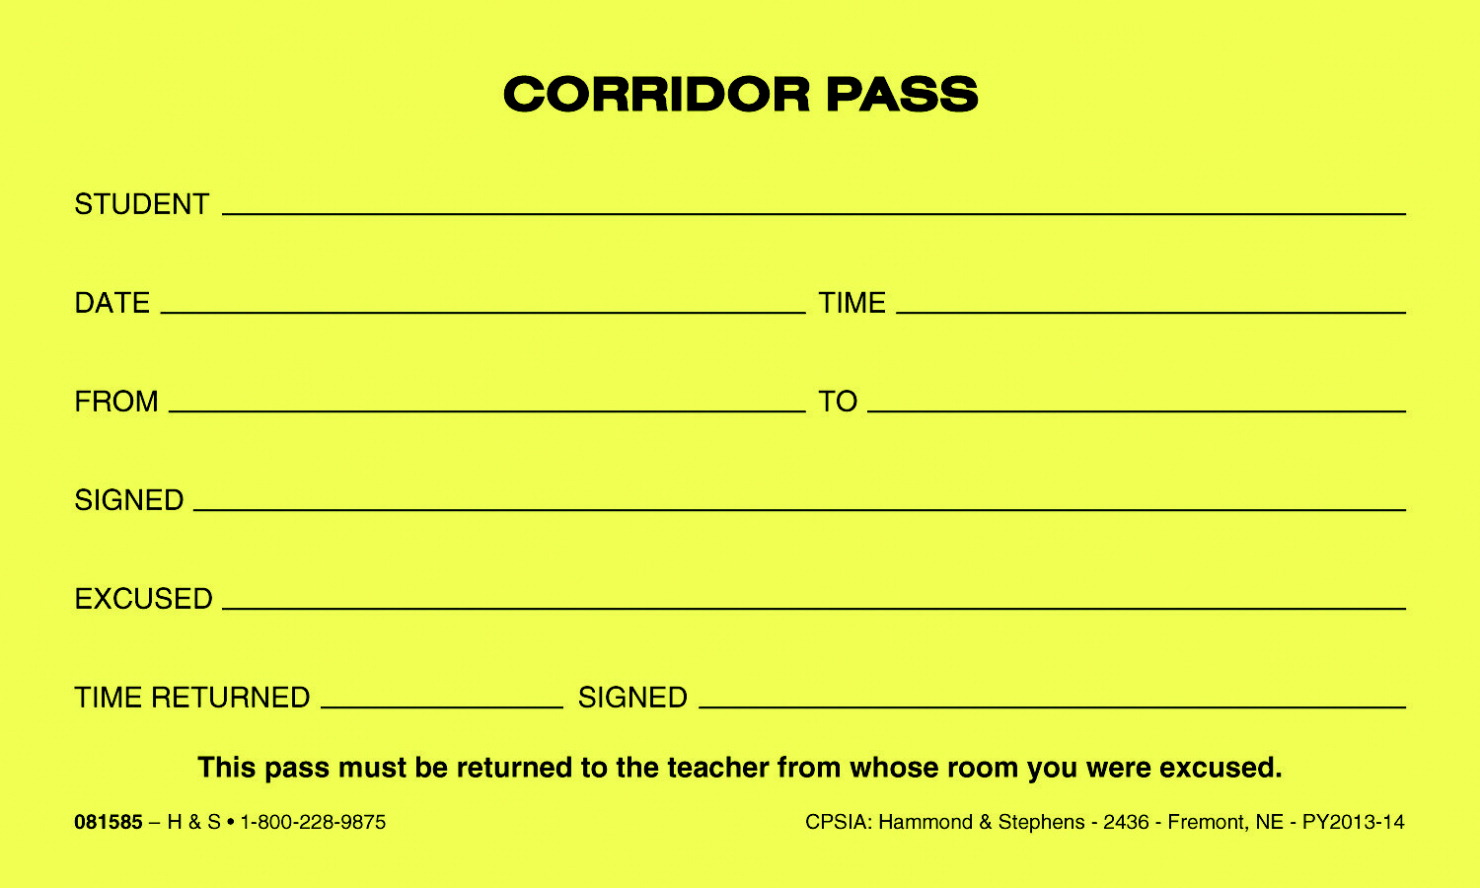 Hammond & Stephens Corridor Pass, Yellow, Set of 10 Pads with 100 Sheets Each